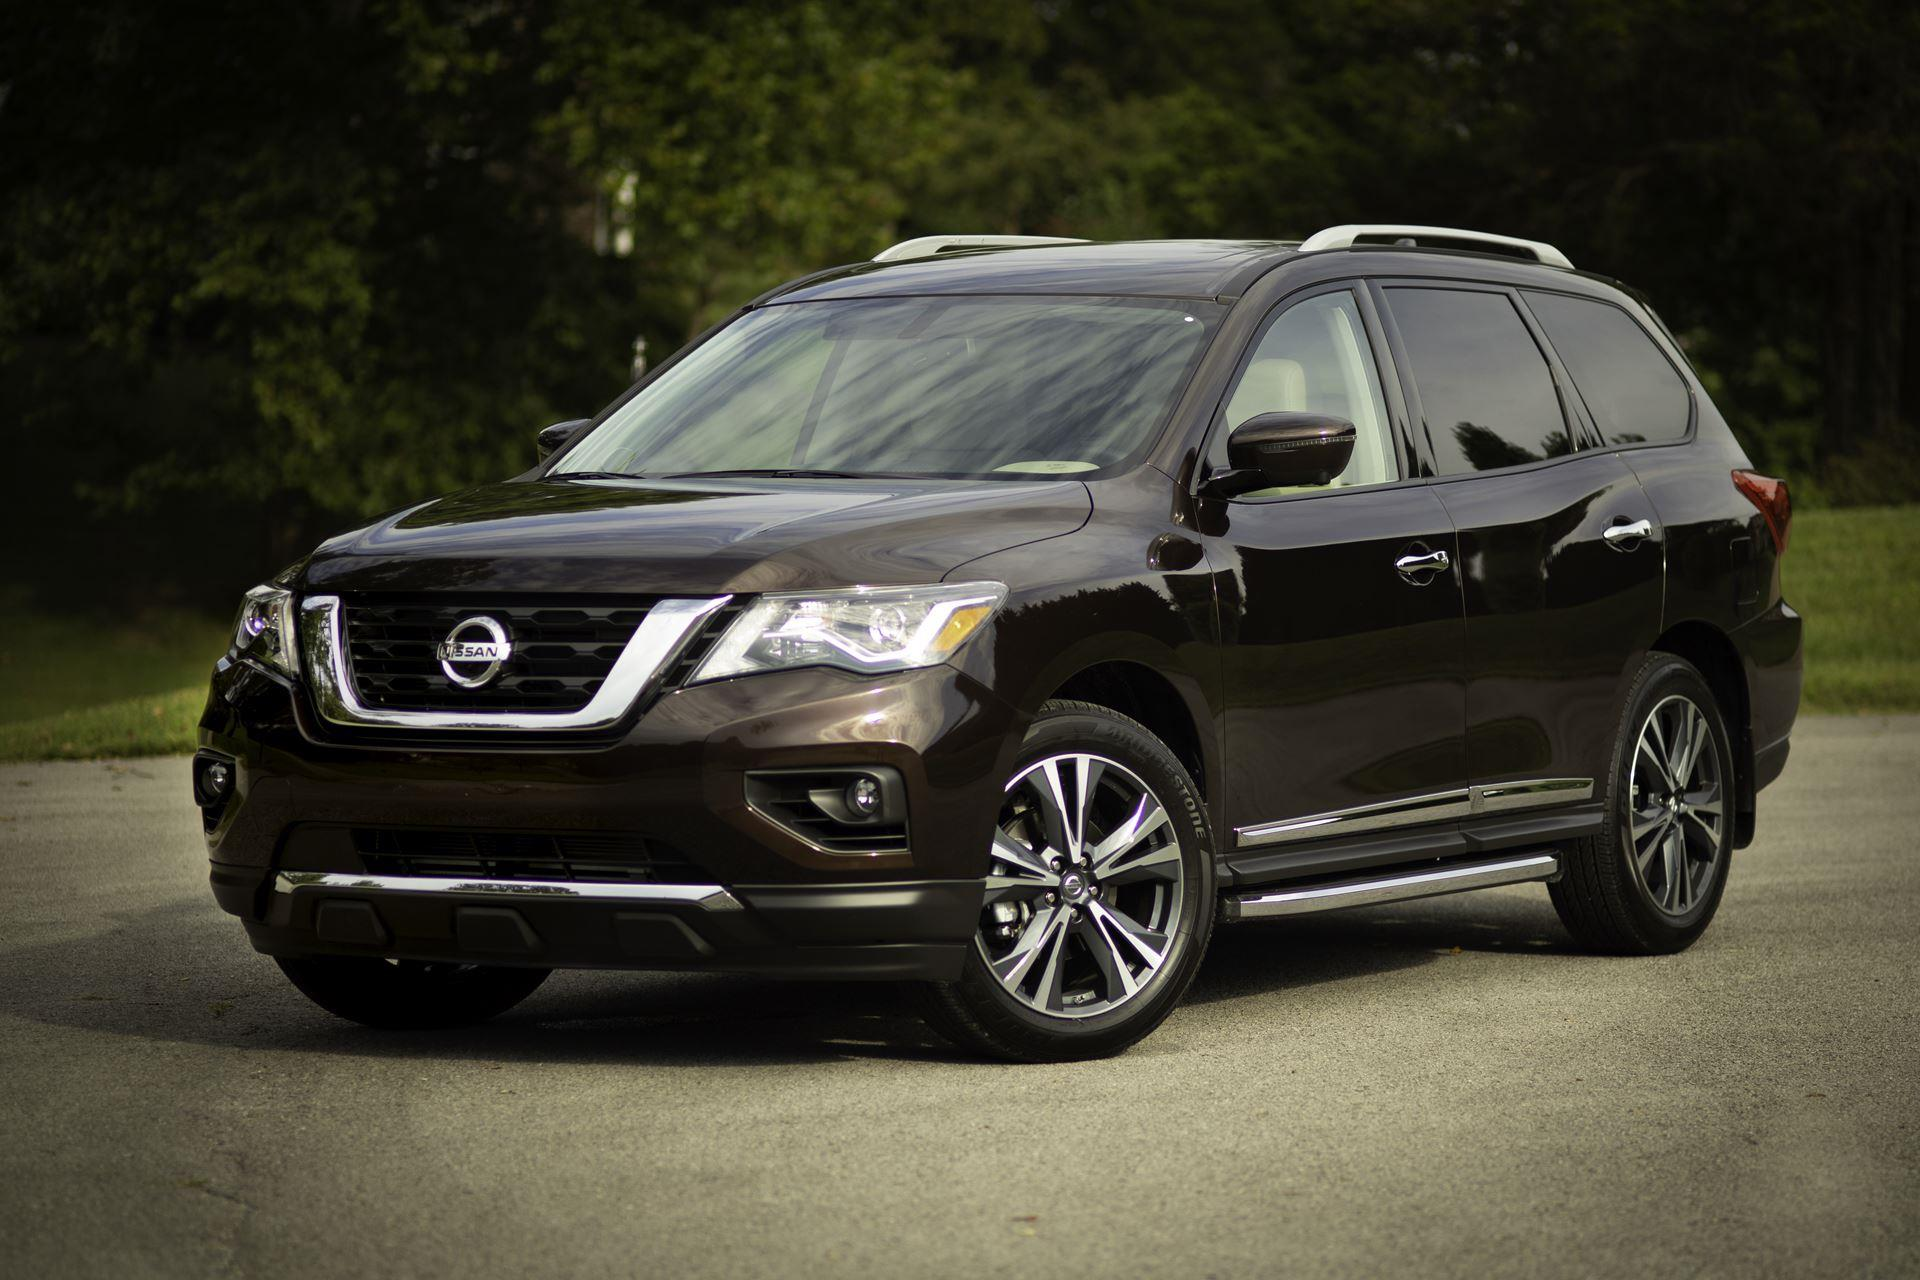 2019 Nissan Pathfinder News And Information 2014 Trailer Harness